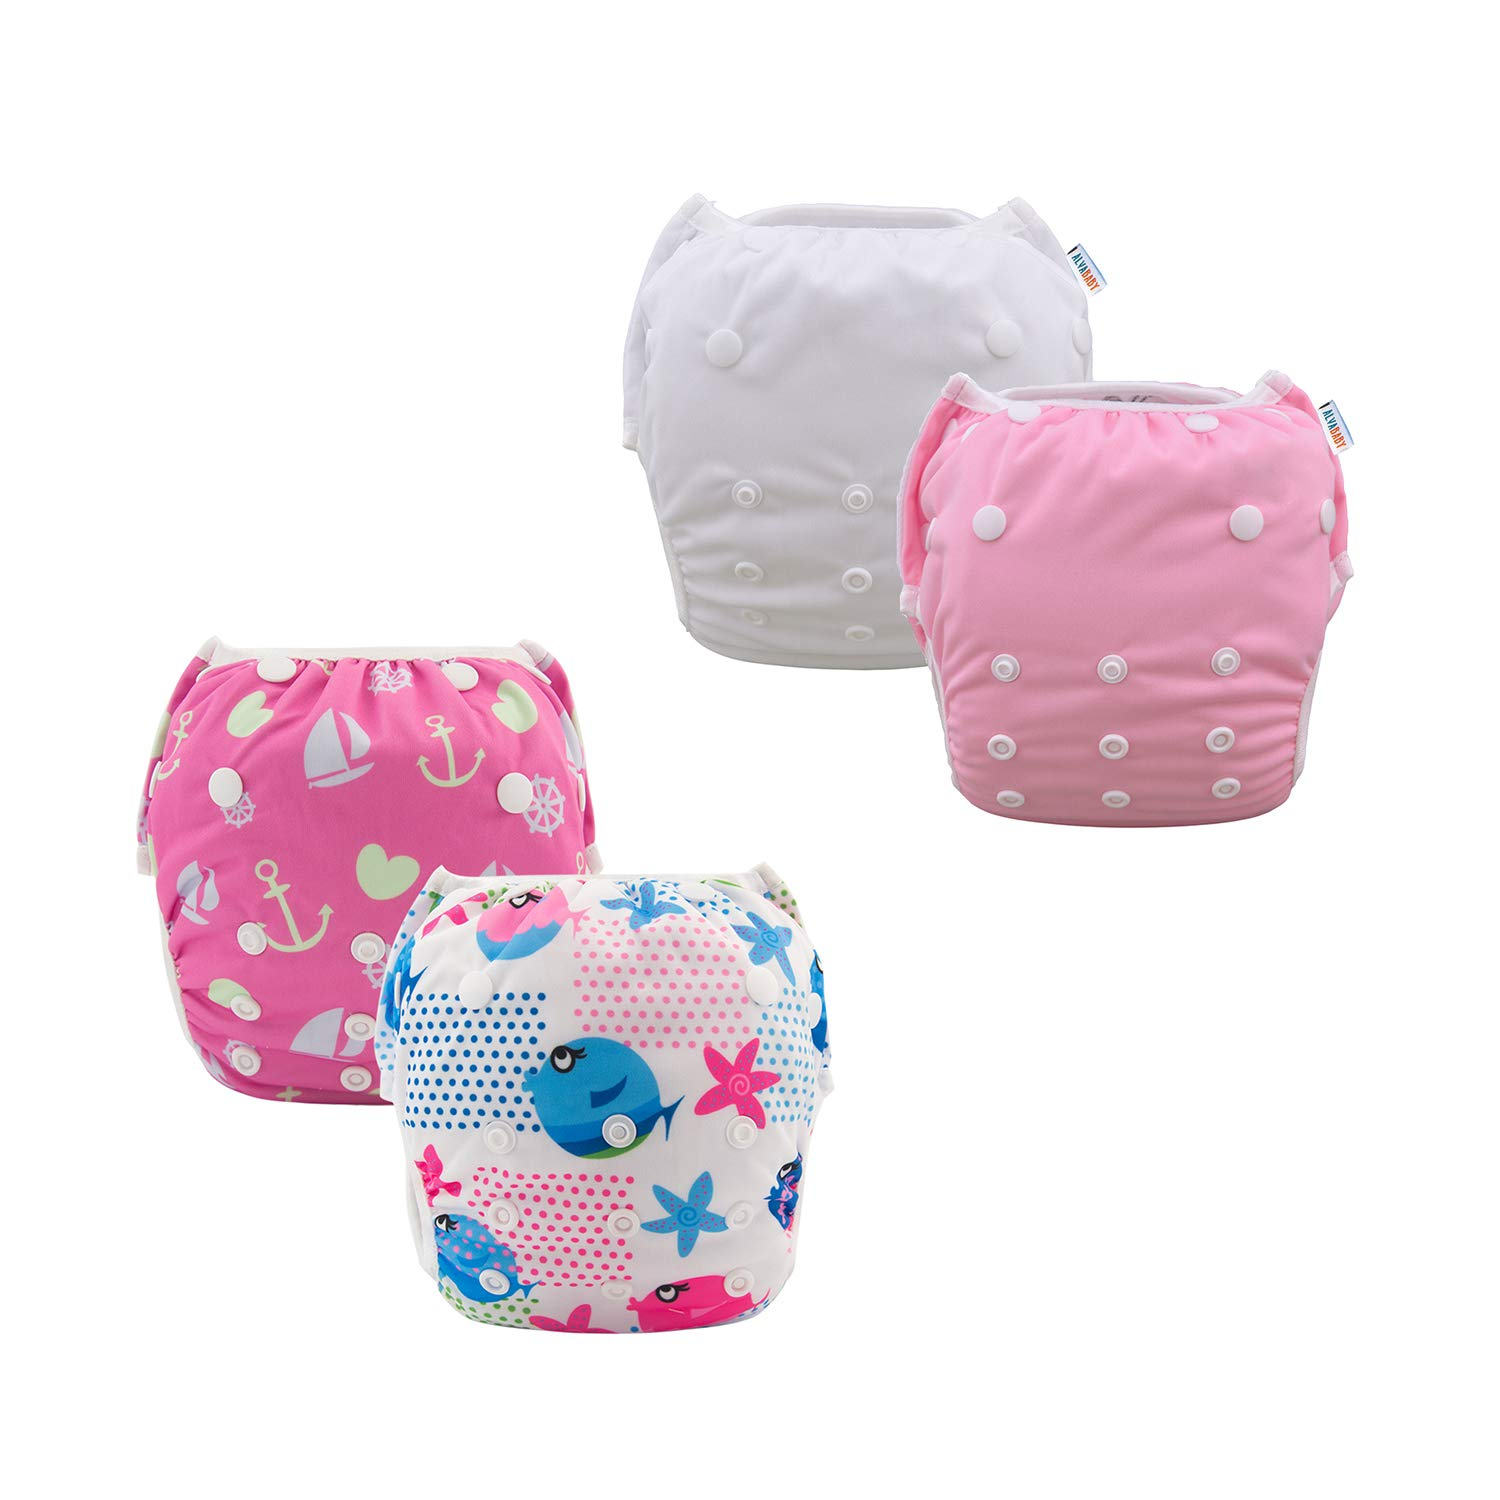 ALVABABY Baby Swim Diapers 4pcs Reuseable Adjustable for Swimming Lesson Baby Shower Gifts 3SW31